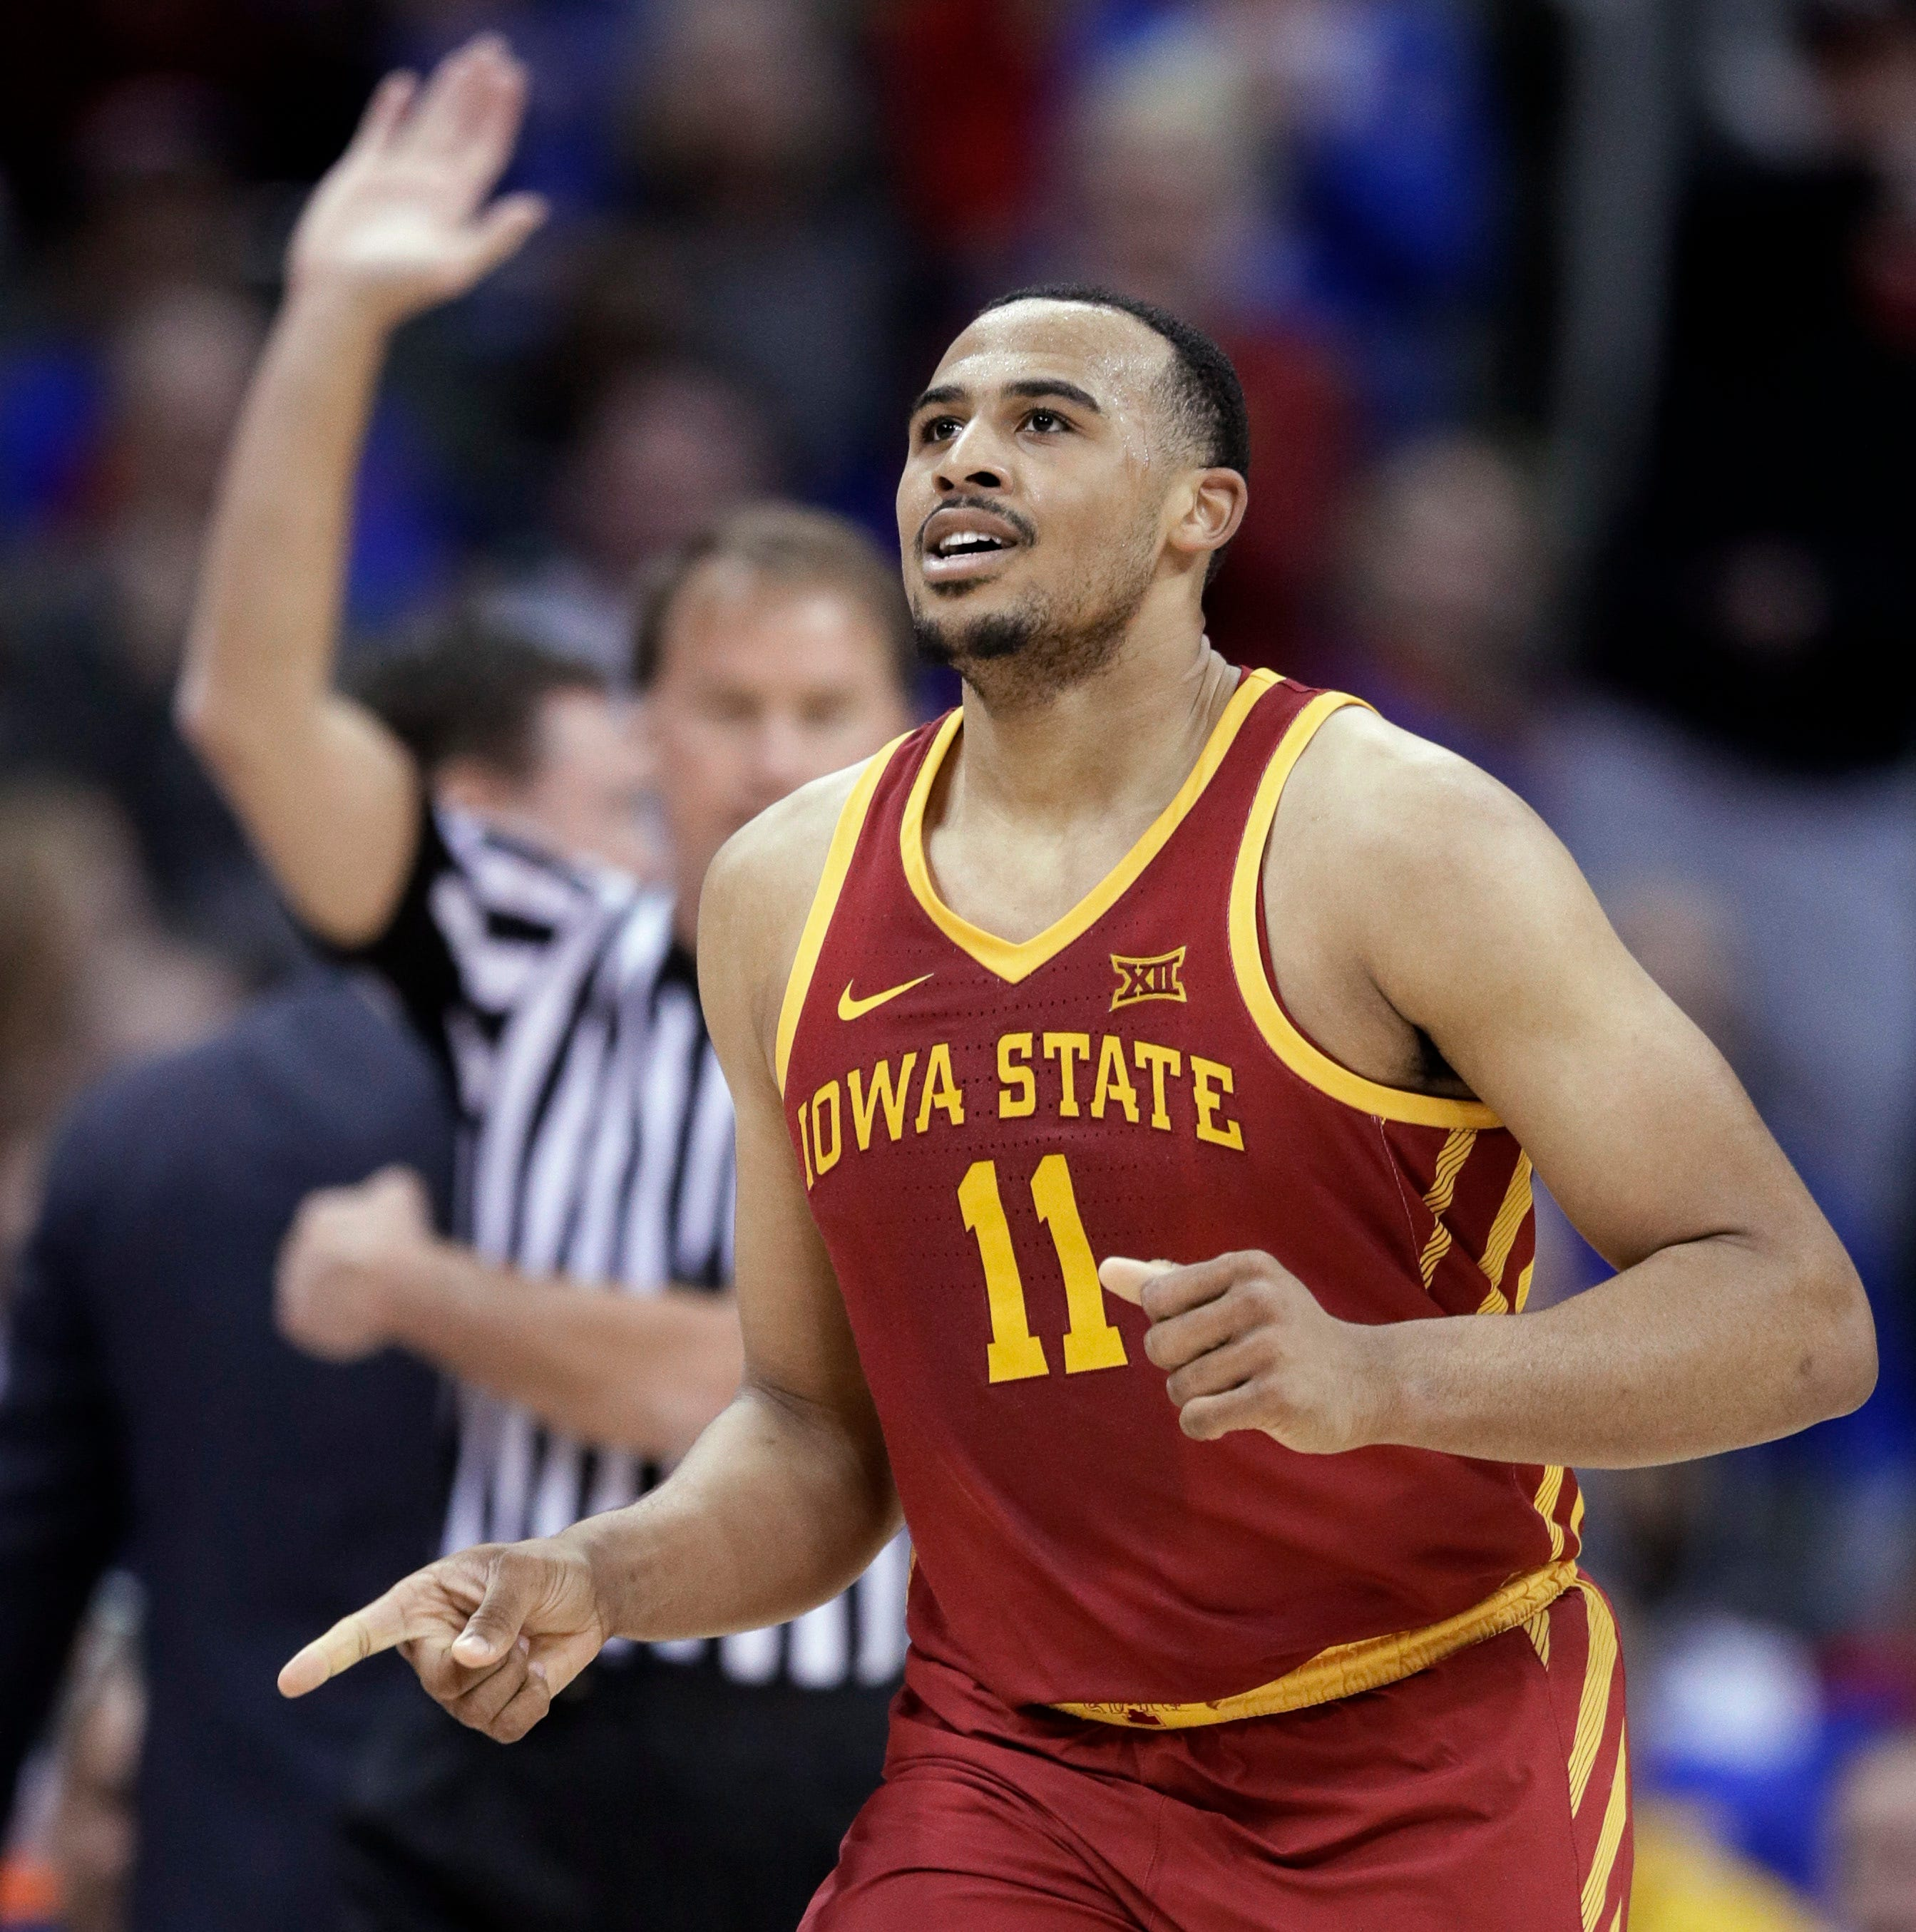 Recent Iowa State basketball player Talen Horton-Tucker pleads guilty to misdemeanor theft